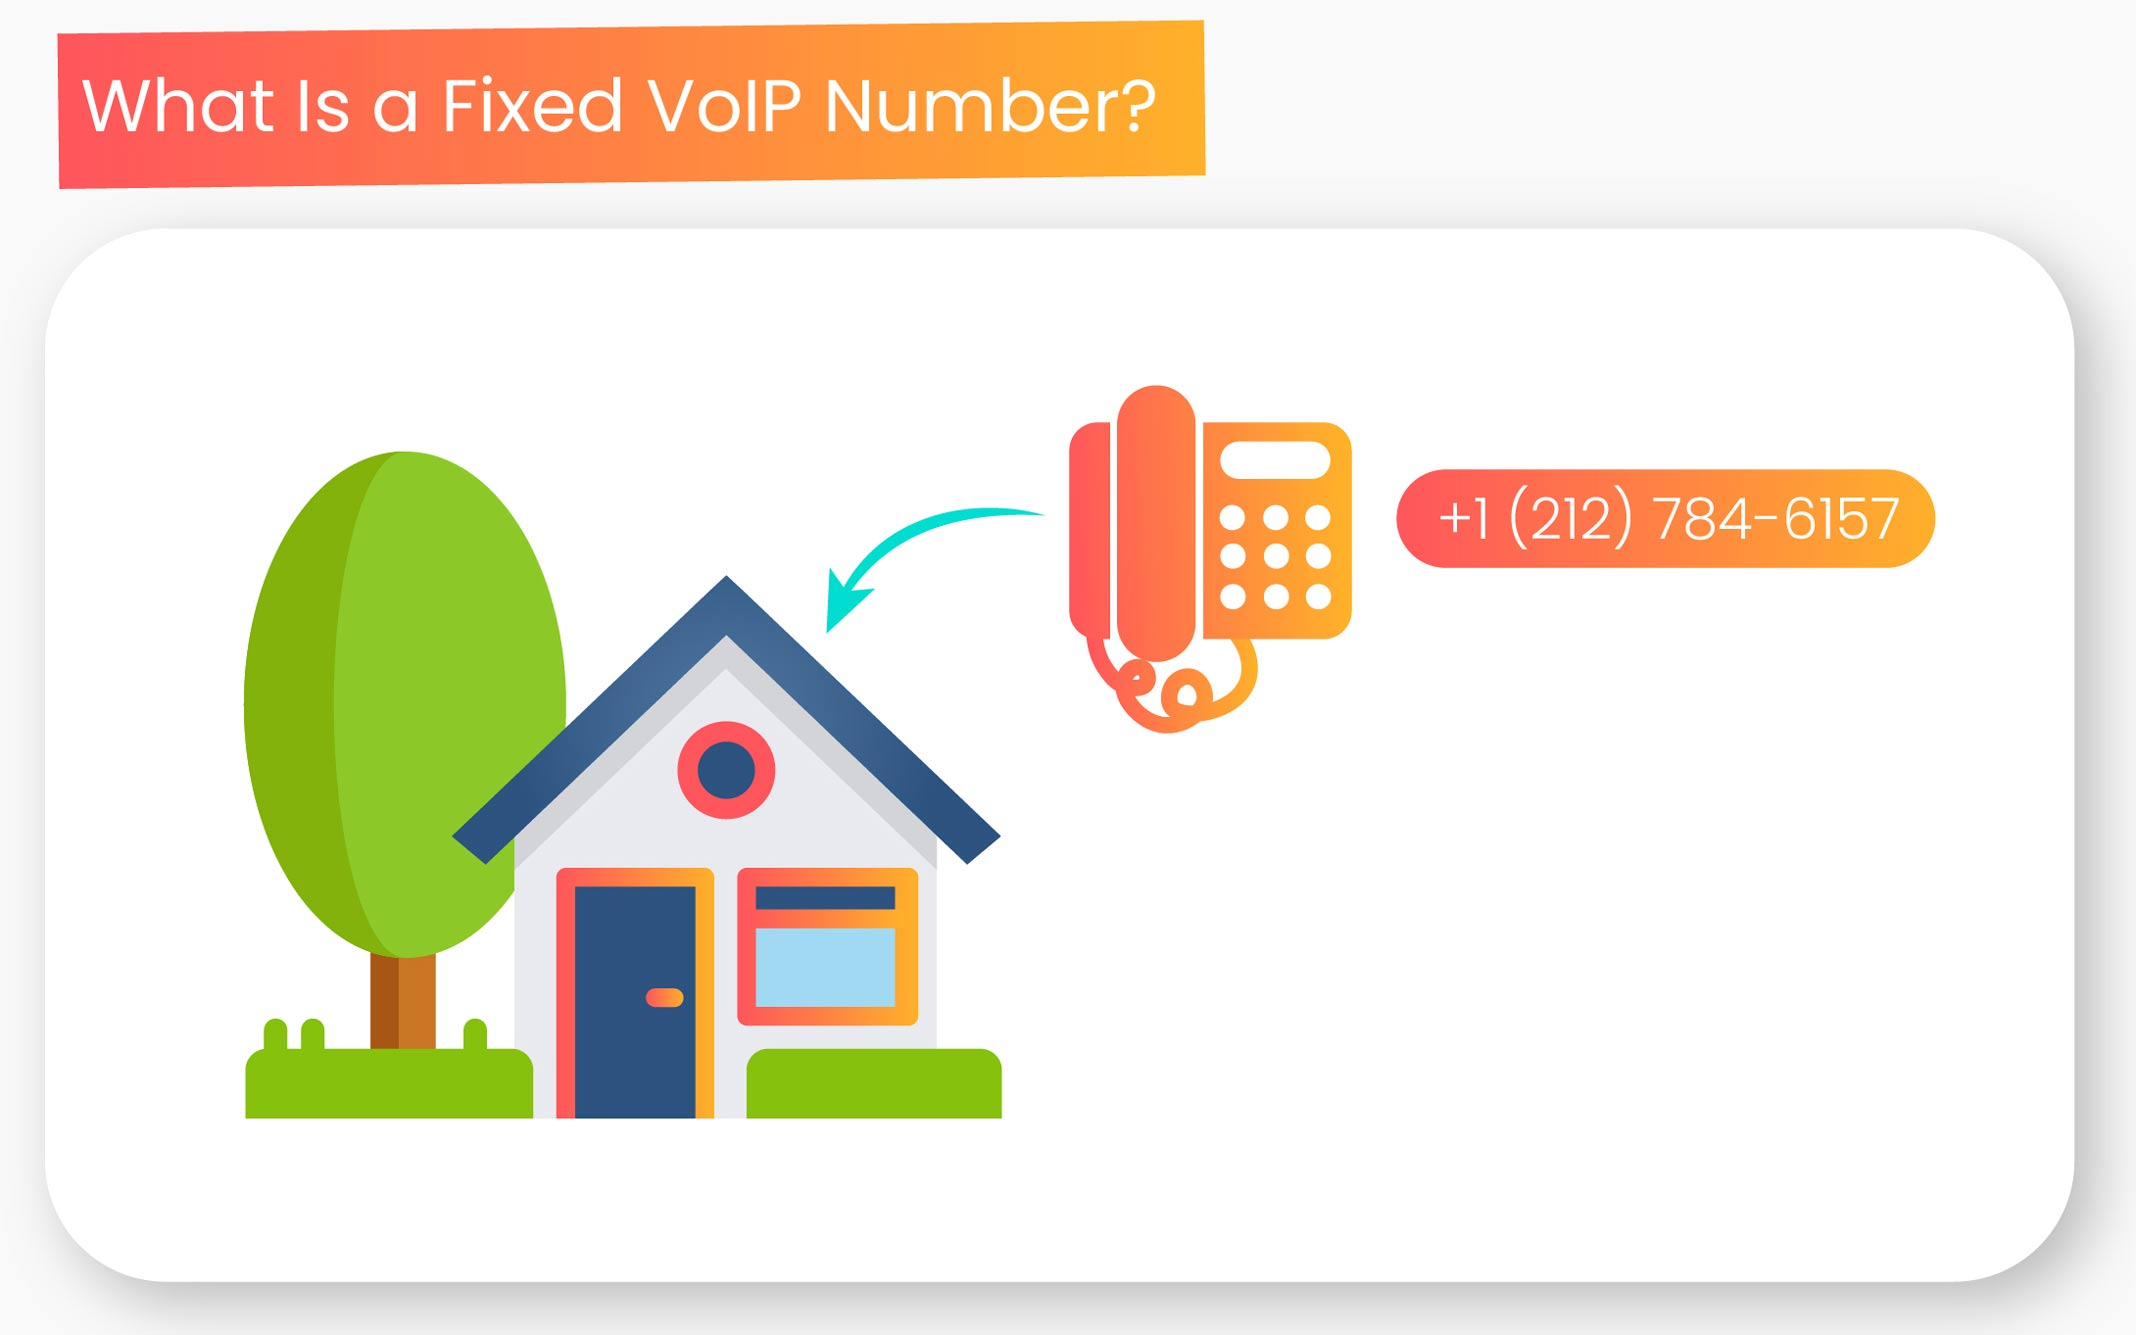 fixed voip number